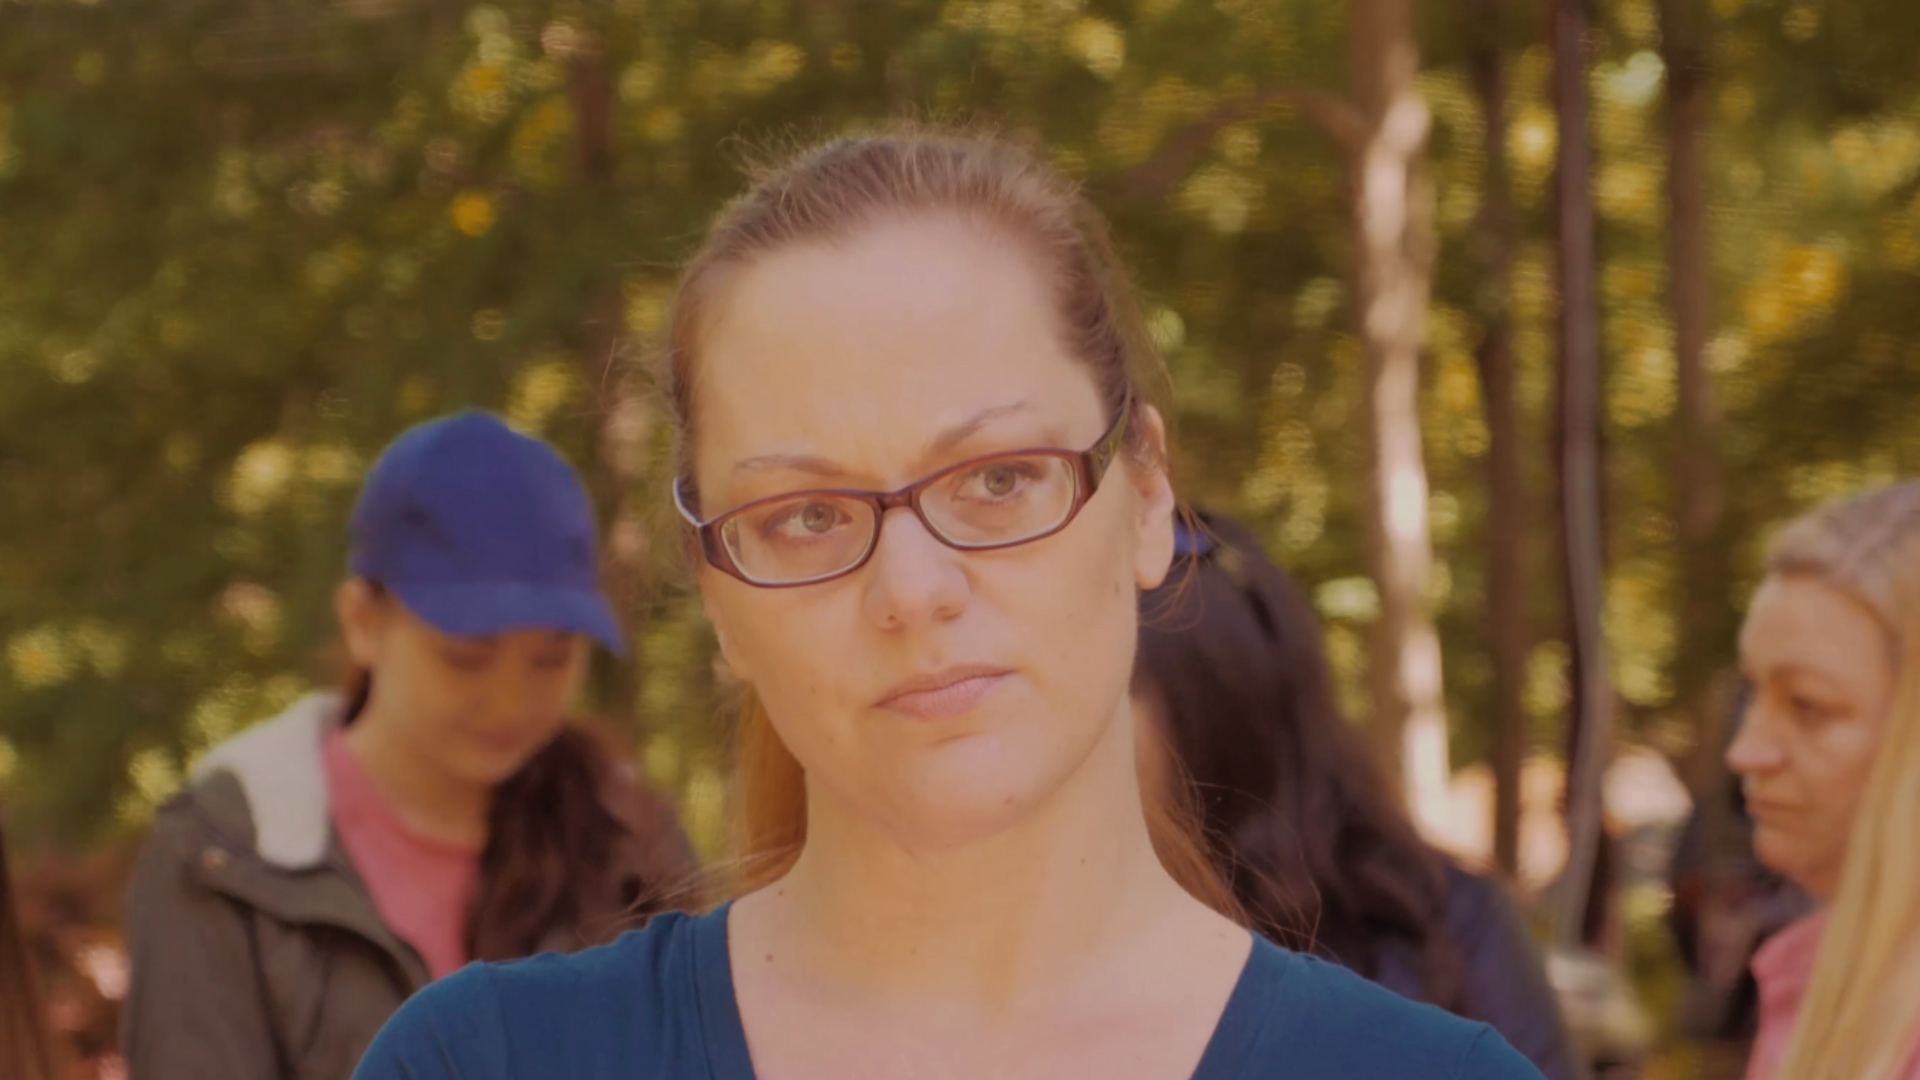 Michelle Lewis in What Lies Beyond (2016)